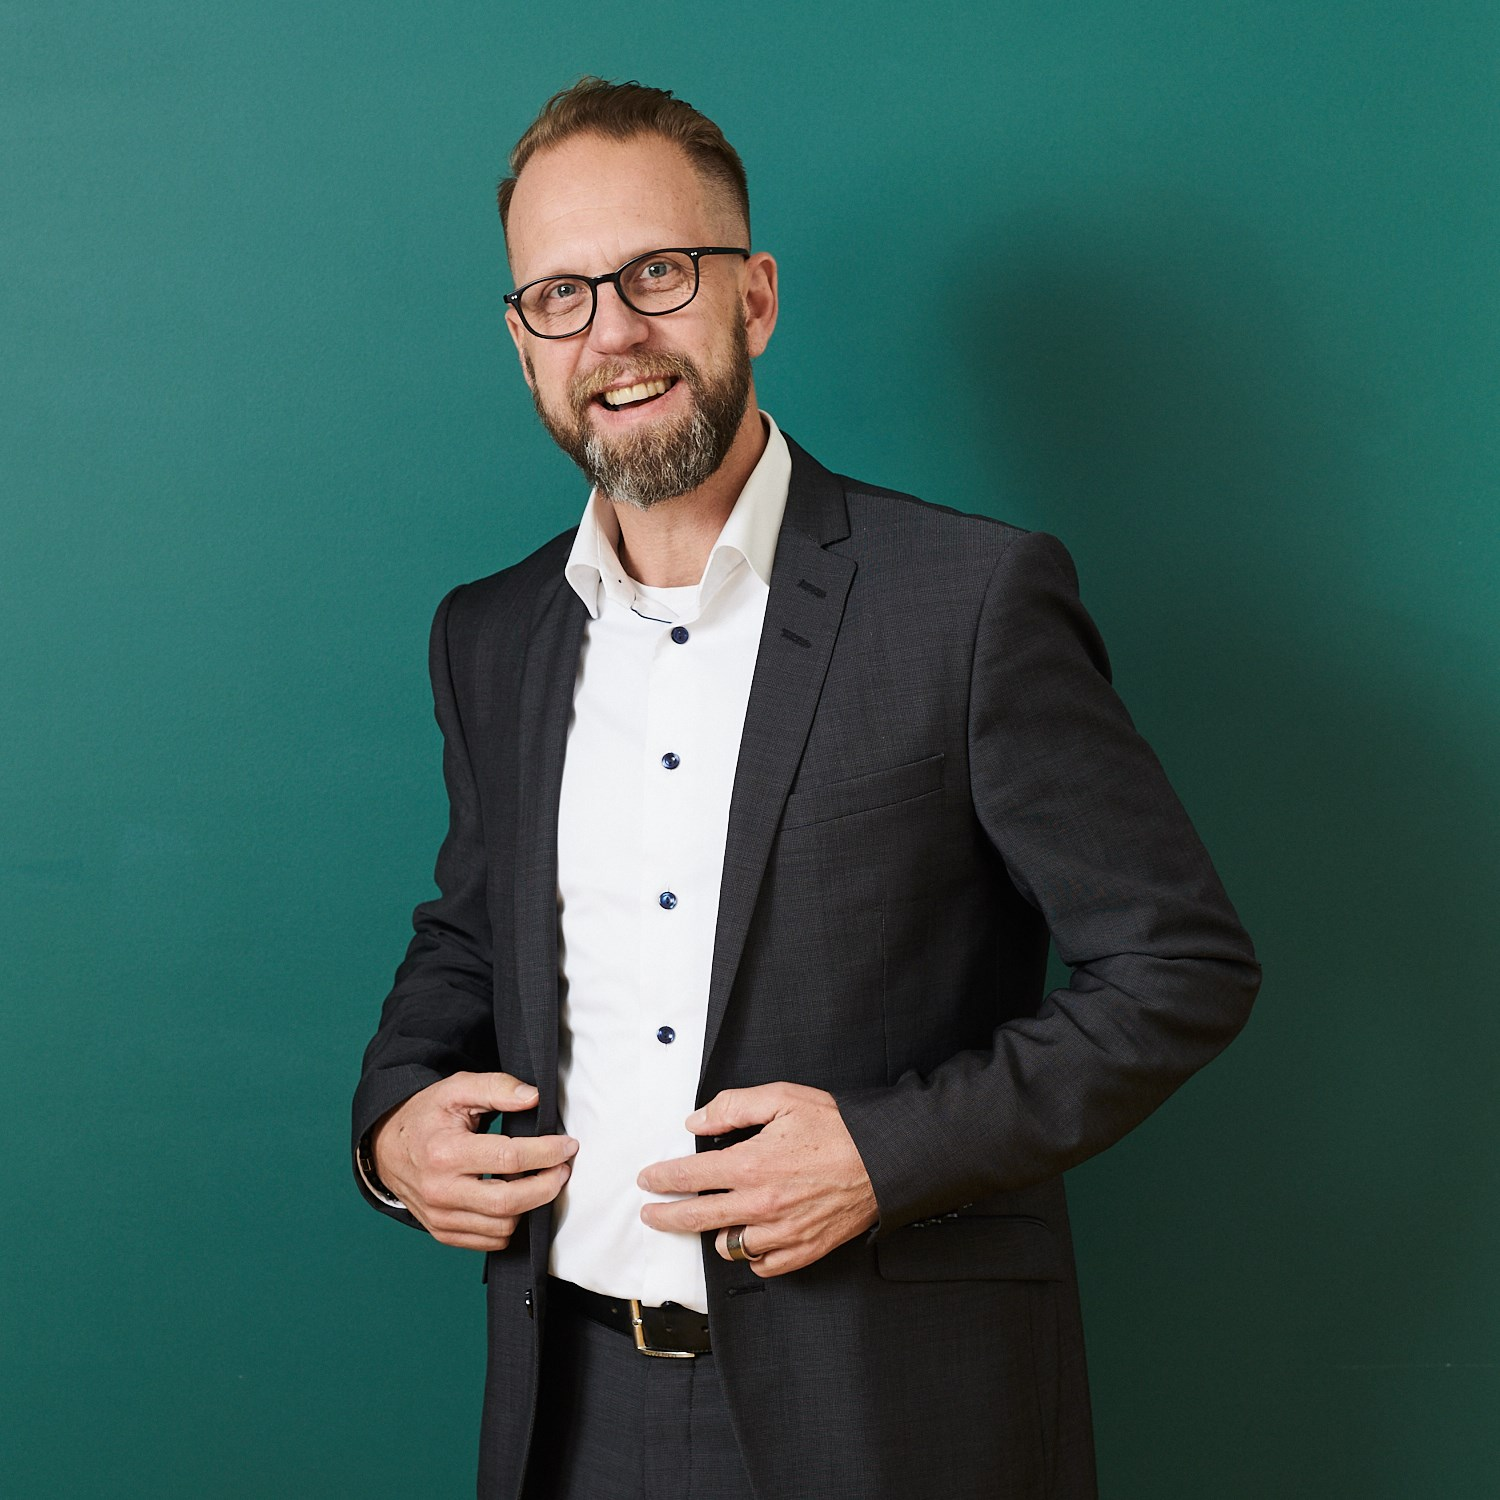 Niklas Thulin from Implement Consulting Group